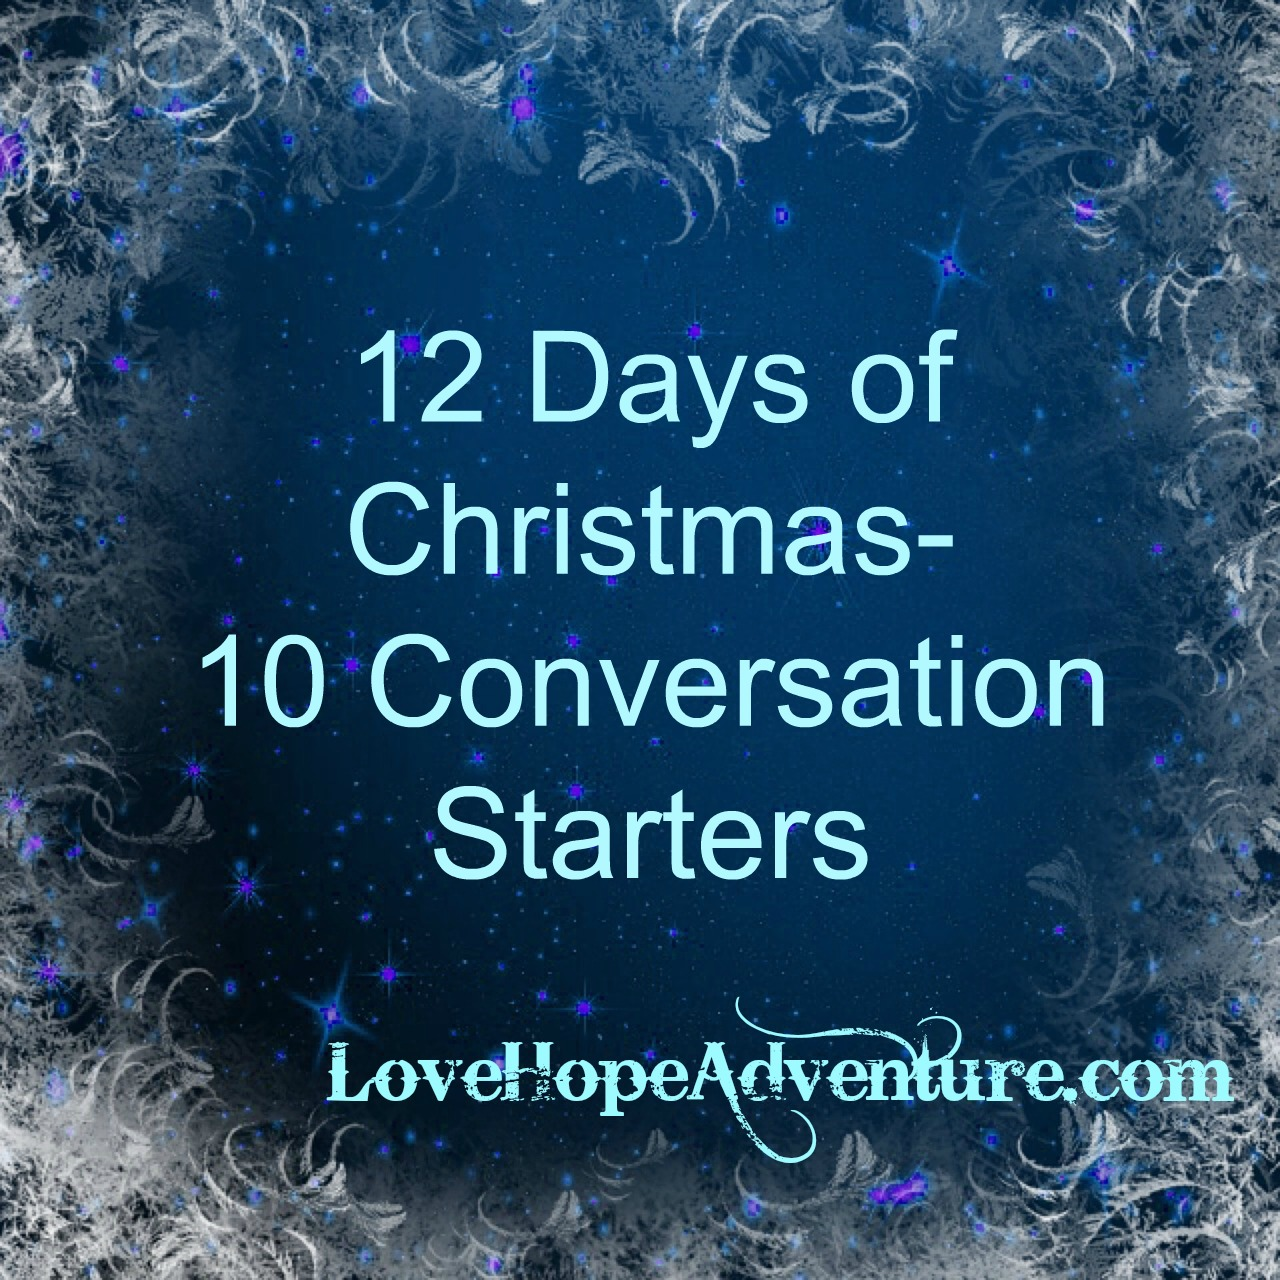 12 Days of Christmas 10 Conversation Starters